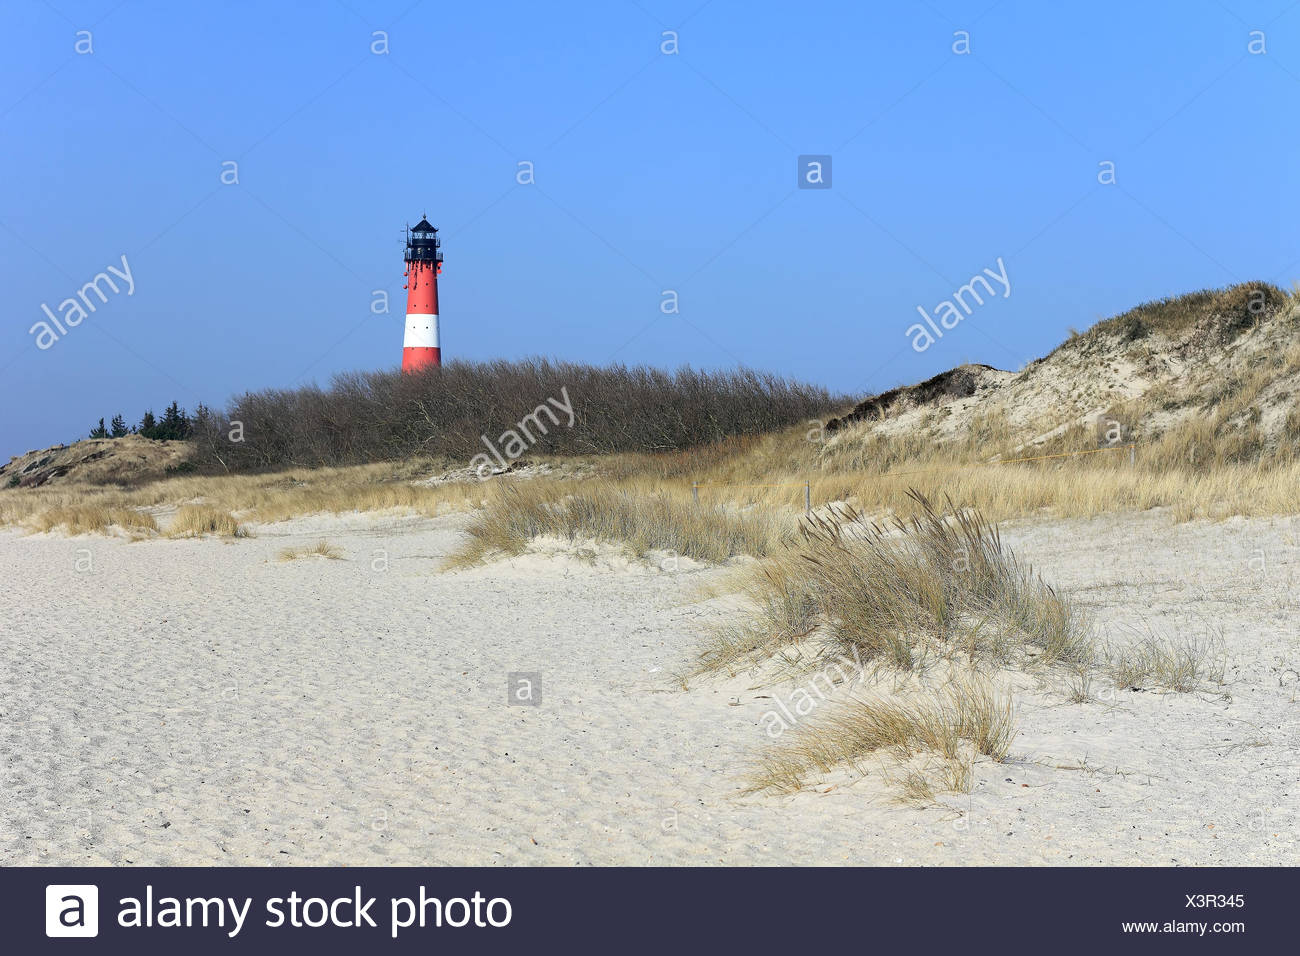 Lighthouse and dunes in South of island of Sylt - Stock Image